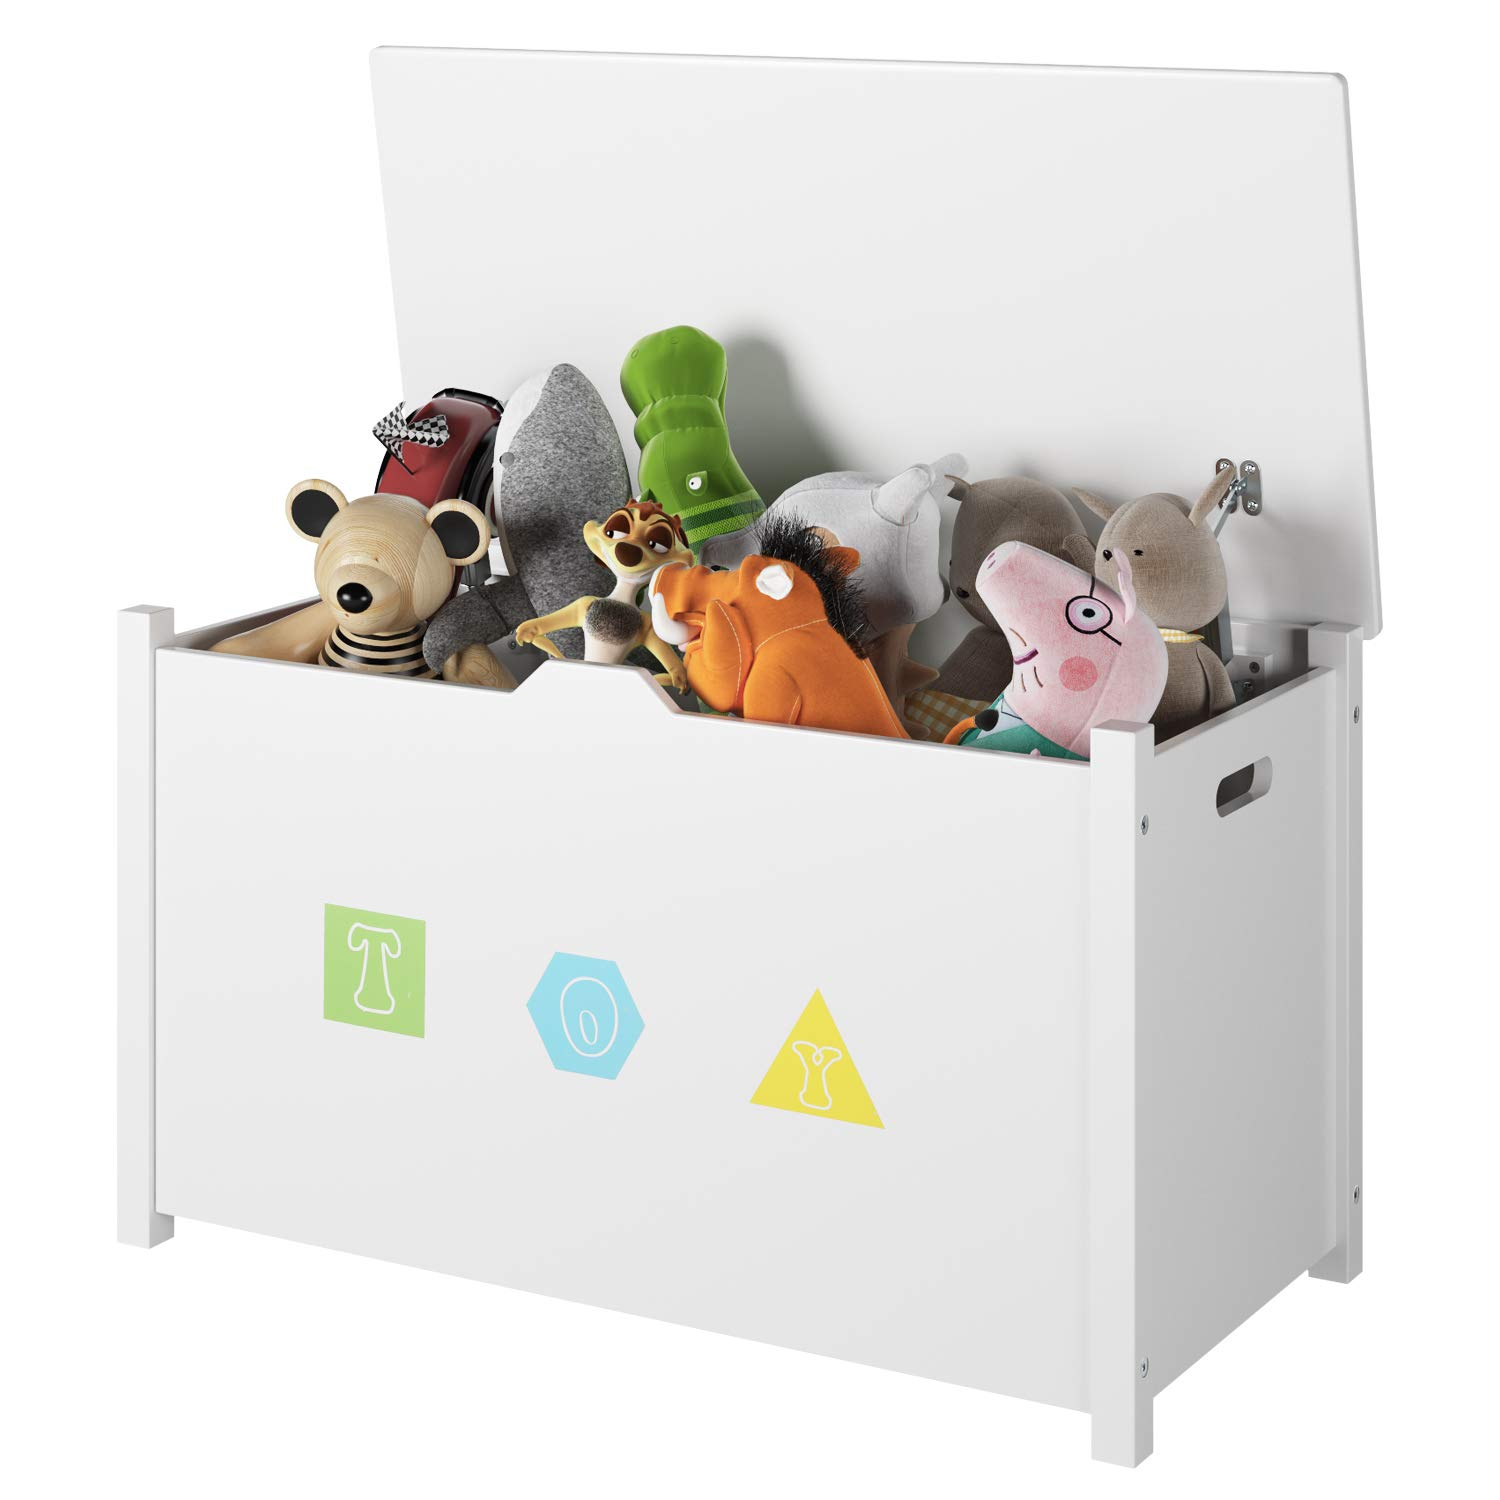 Homfa Wooden Kids Toy Chest with Flip-Top Lid, Large Sturdy Children Storage Cabinet Seat Bench Toddler Room Organizer Bin with 2 Safety Hinges for Nursery, Playroom, Home, White by Homfa